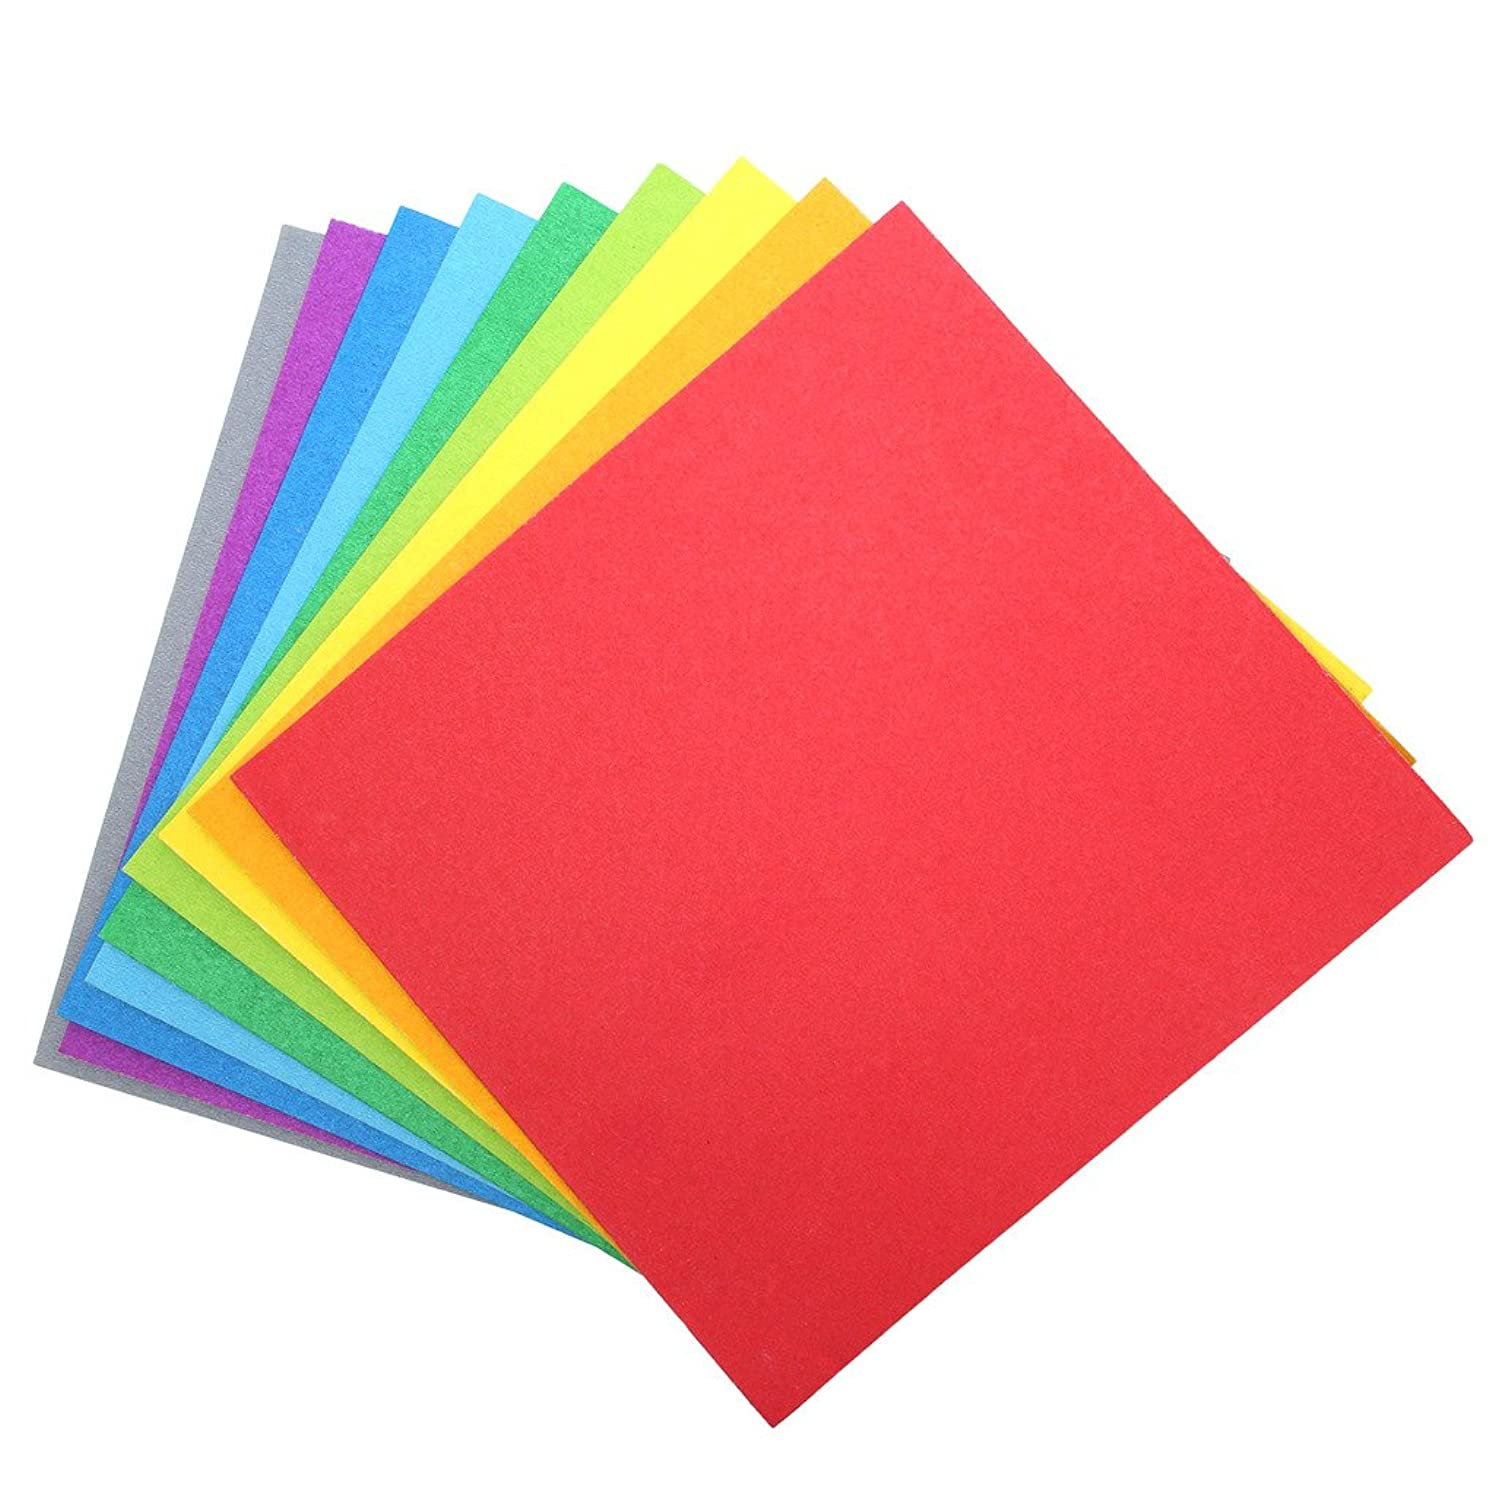 "9 Color Cardstock Paper Pack (54pc) – 8"" x 8"" Color Pages for Scrapbook, Greeting Cards, Arts and Crafts For Kodak Mini Instant Printer Picture Projects"